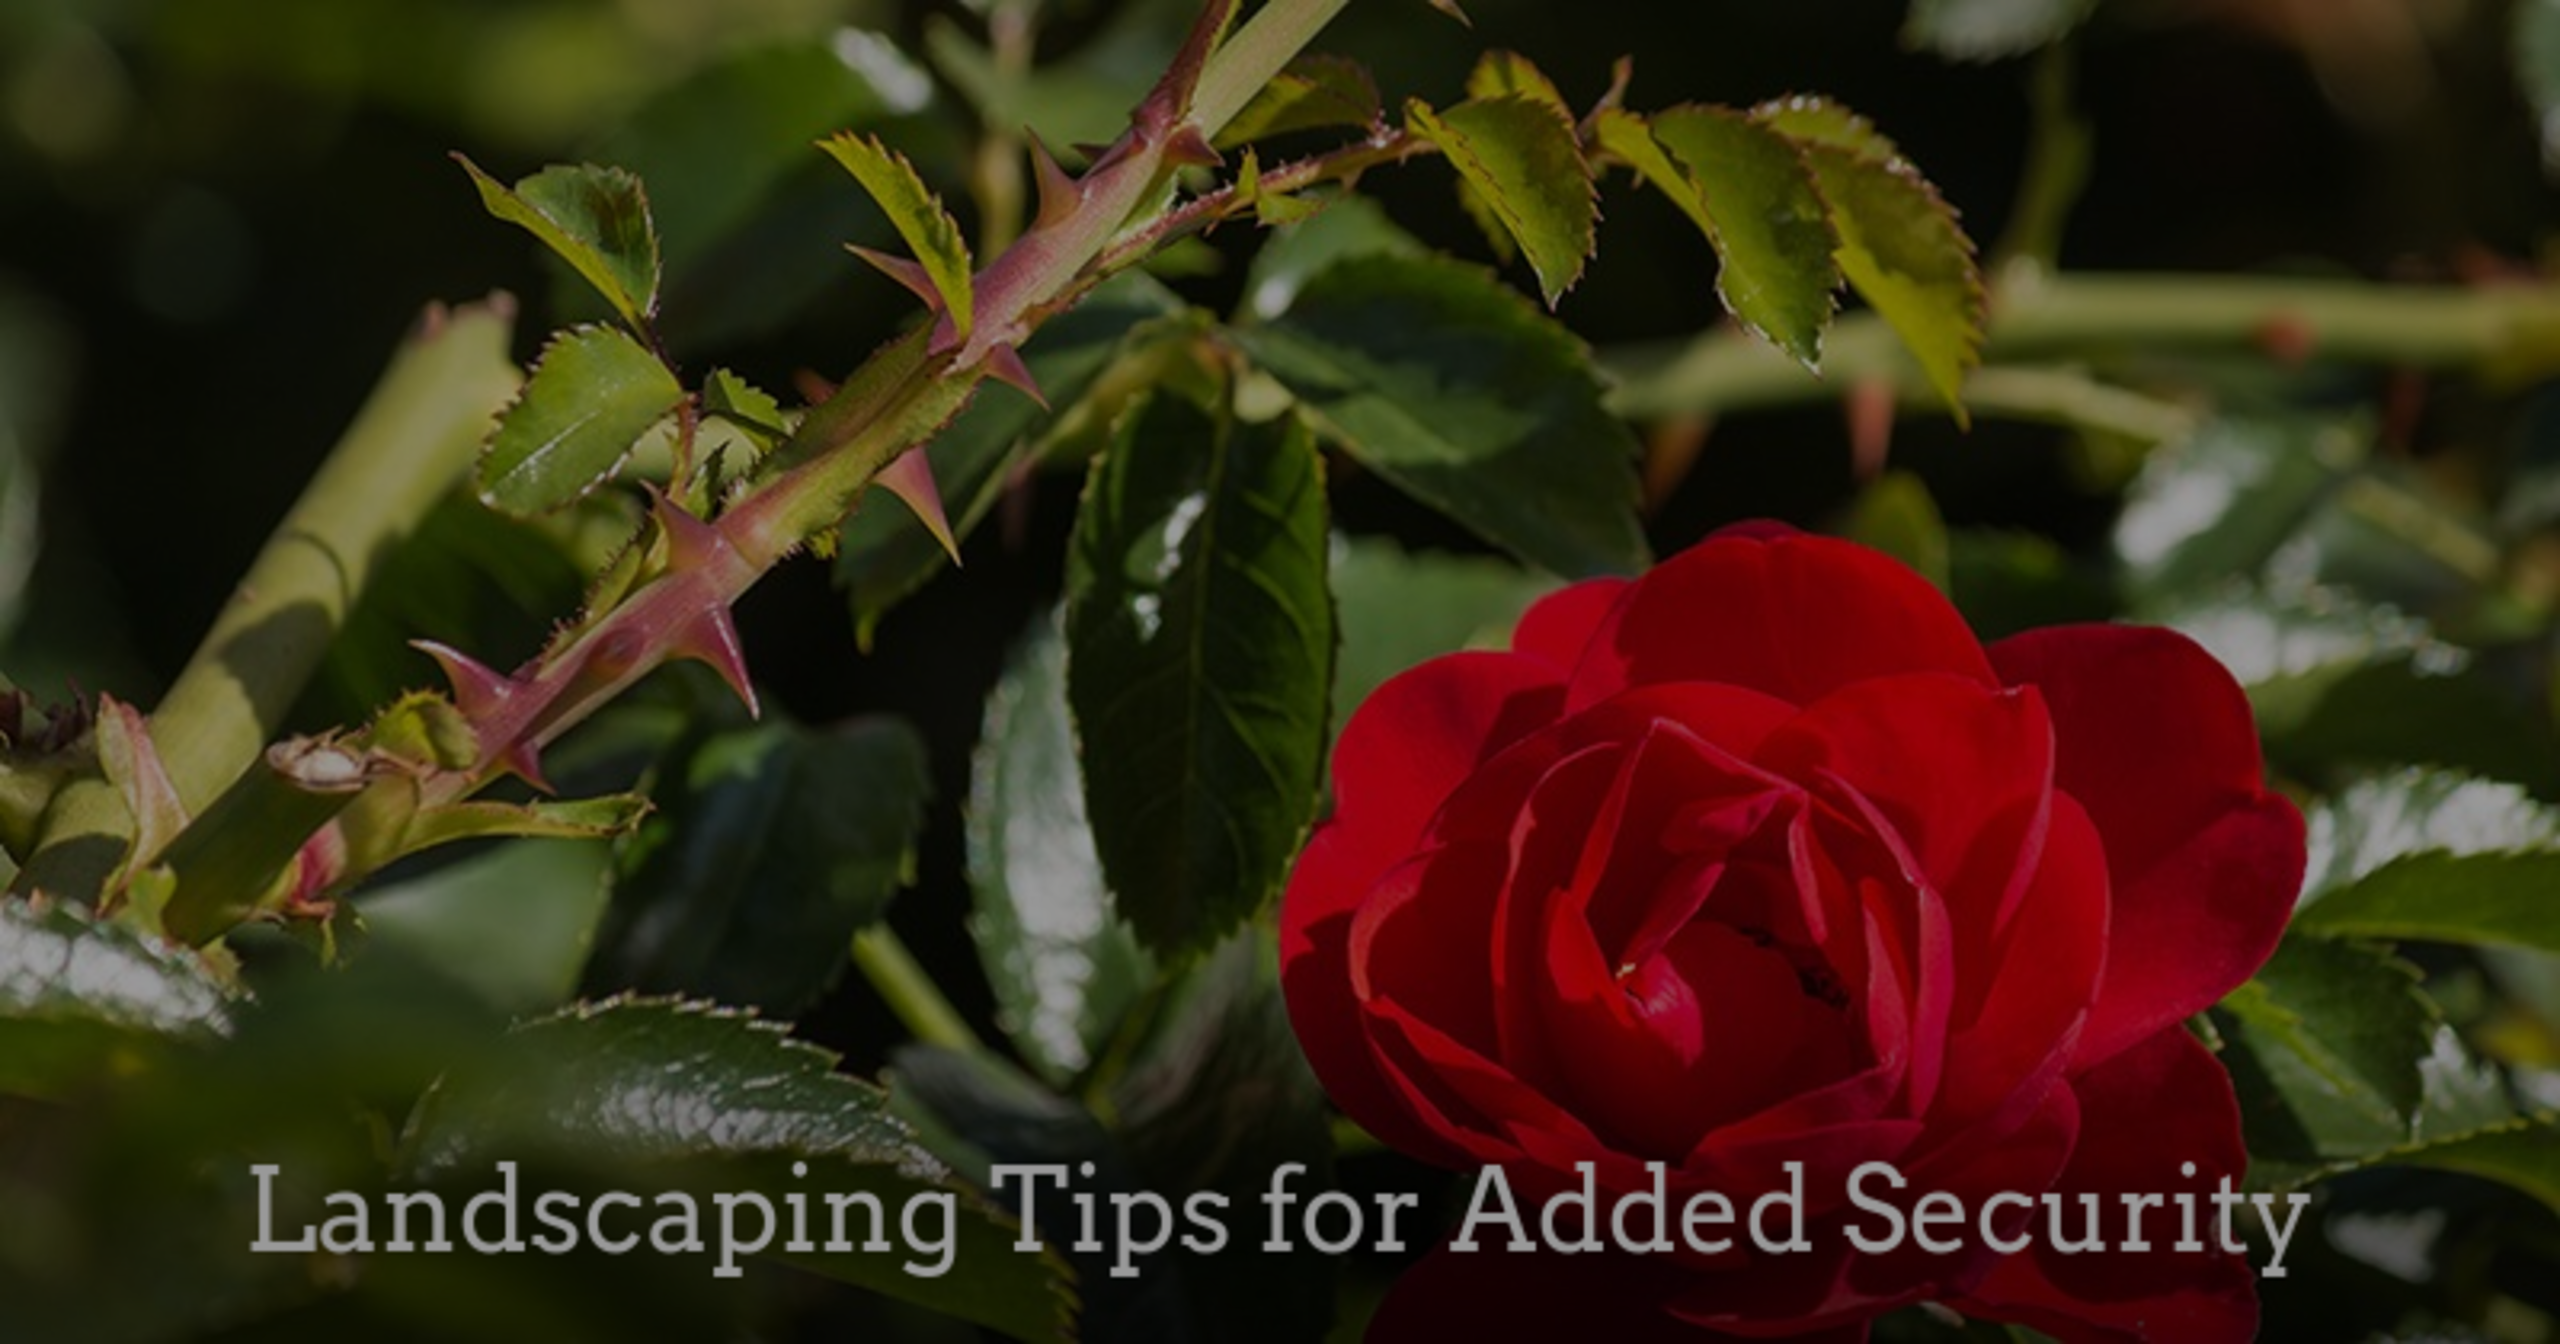 Landscaping Tips for Added Security